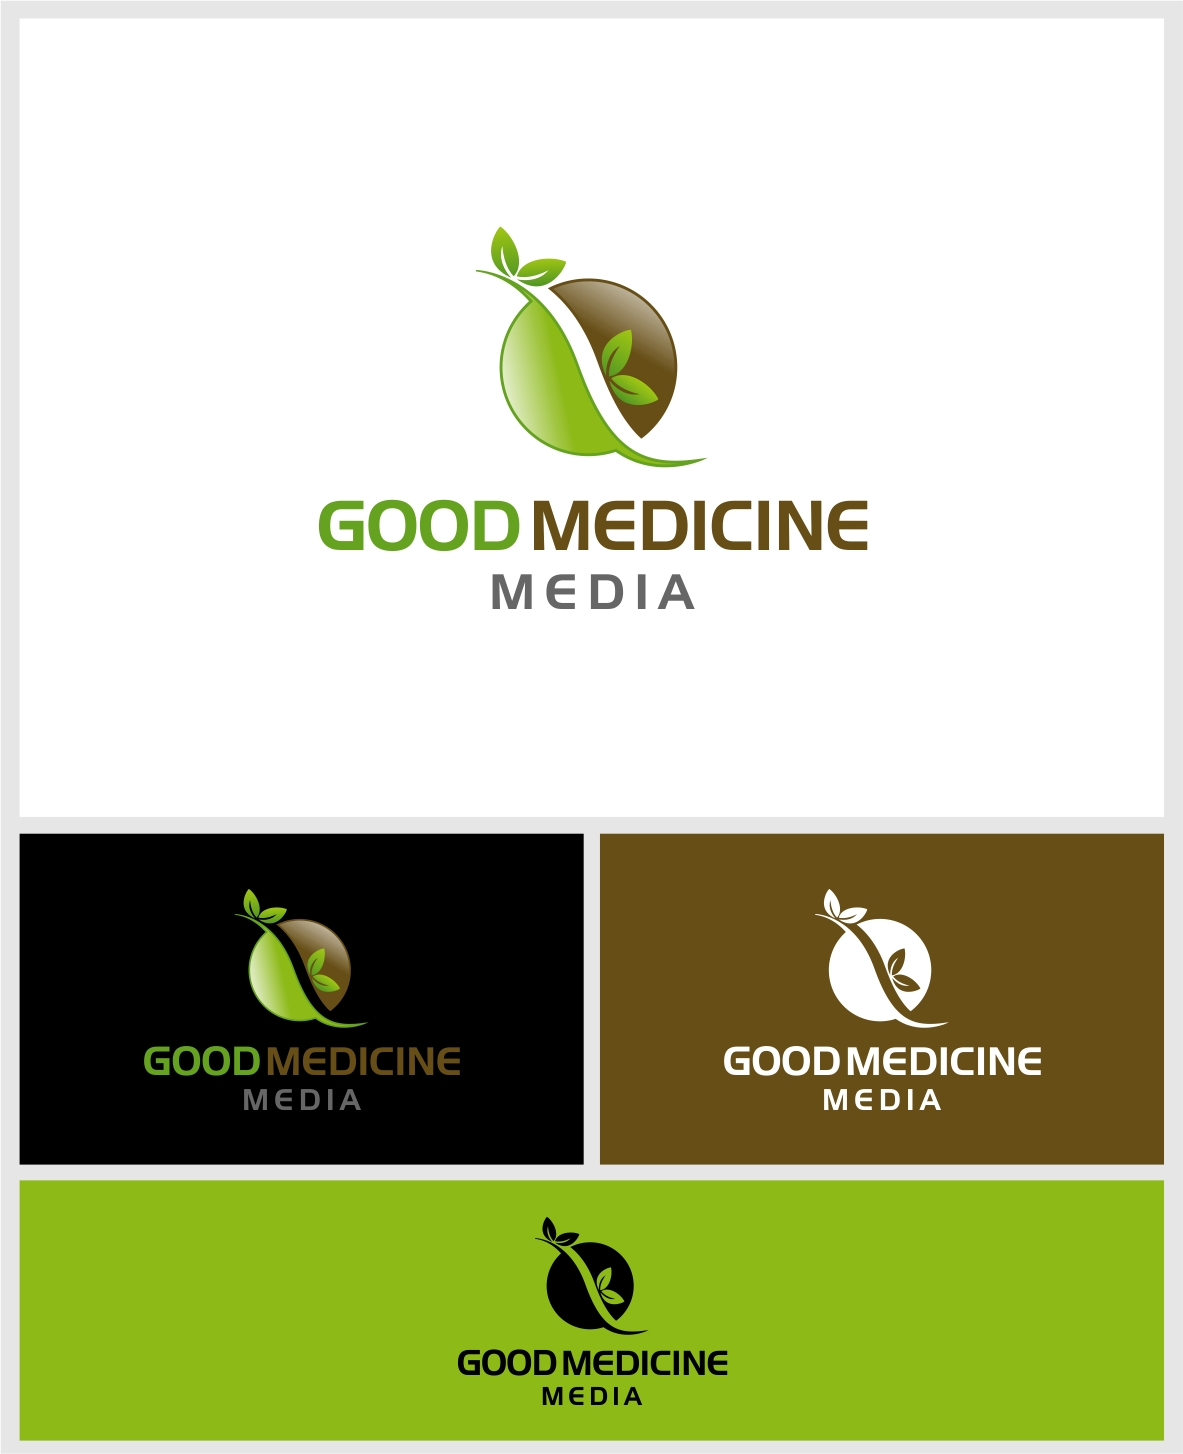 Logo Design by haidu - Entry No. 207 in the Logo Design Contest Good Medicine Media Logo Design.